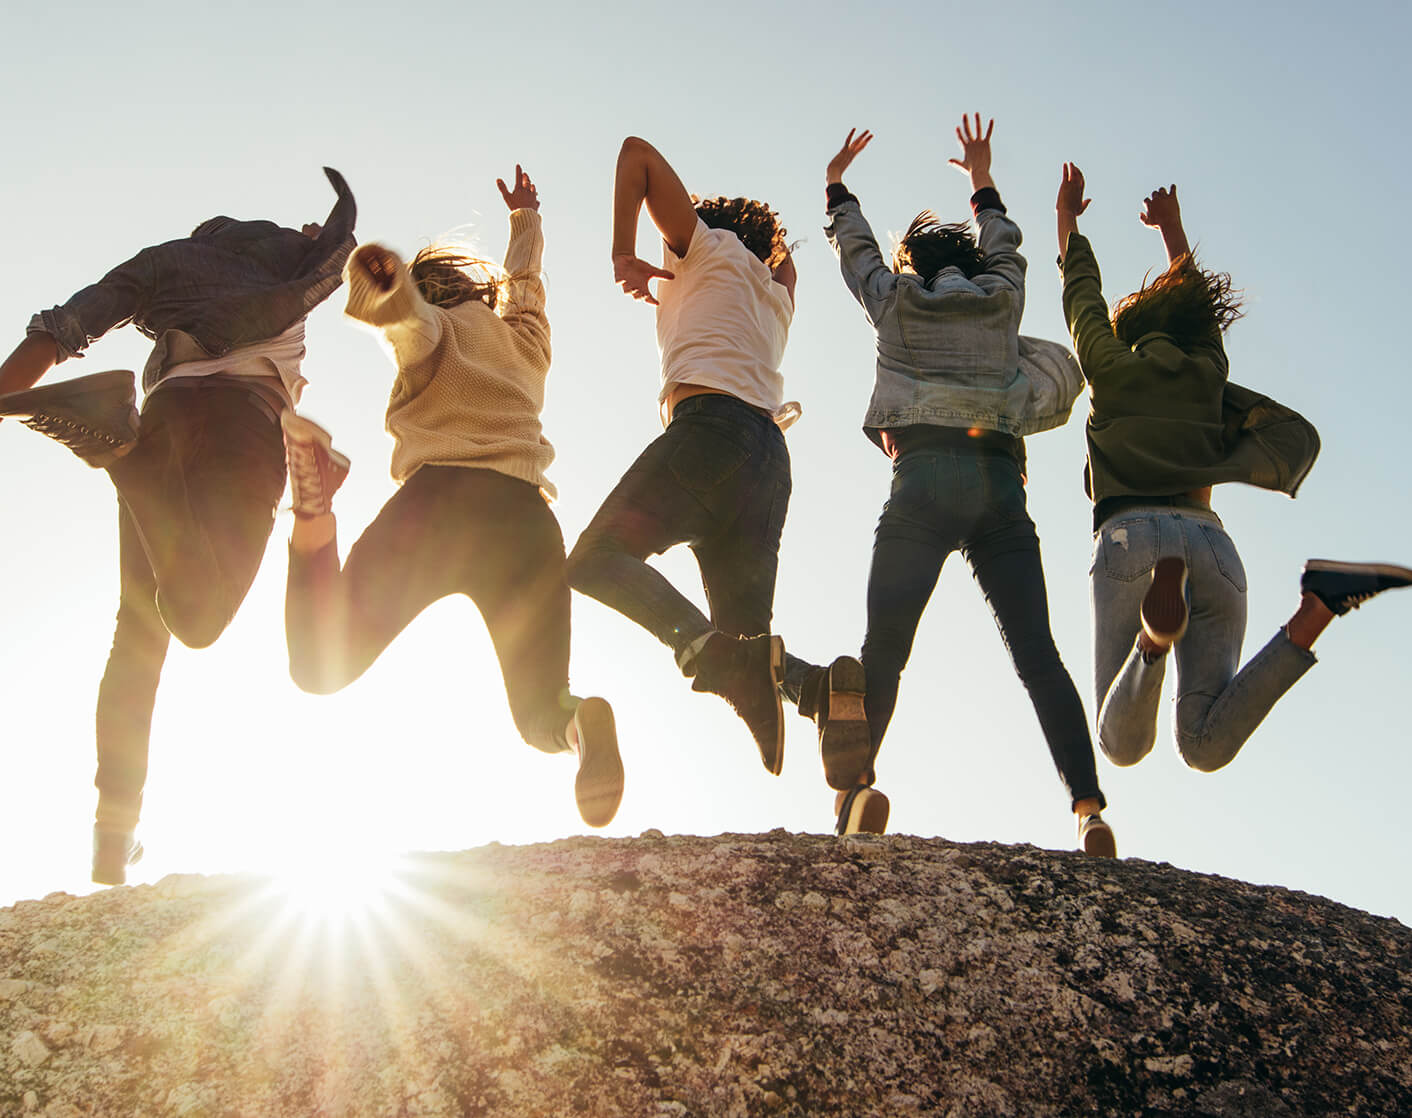 image of a group of young adults jumping on top of a crest of a hill with the setting sun in the background